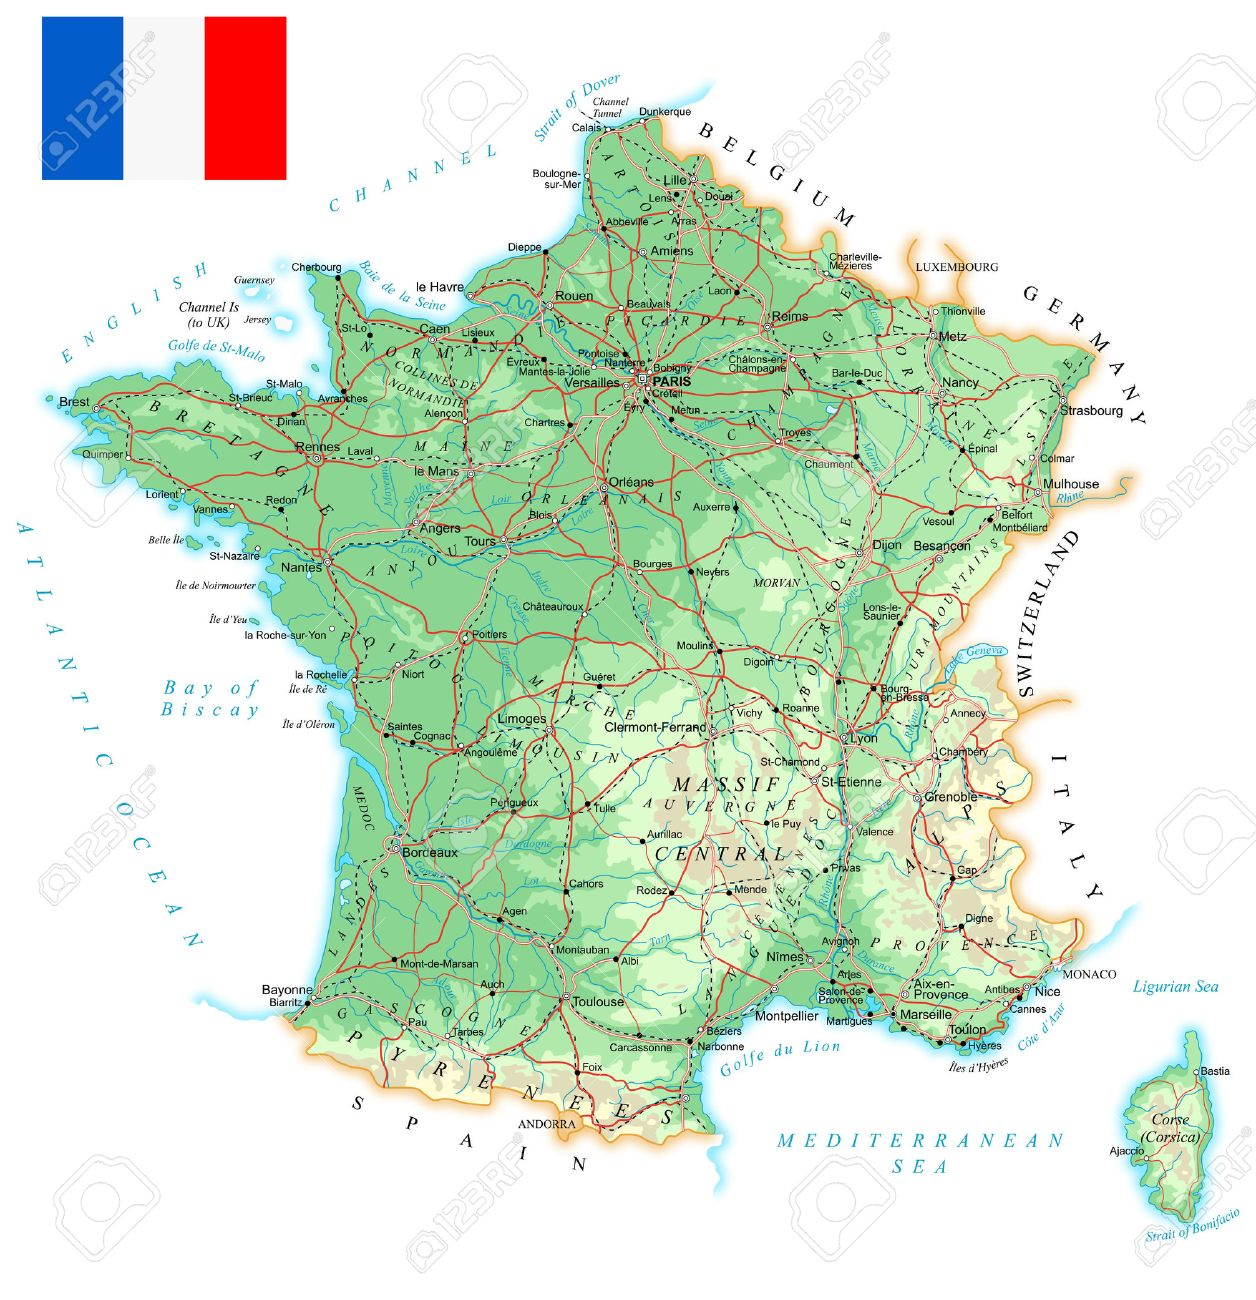 Map Of France With City Names.France Detailed Topographic Map Illustration Map Contains